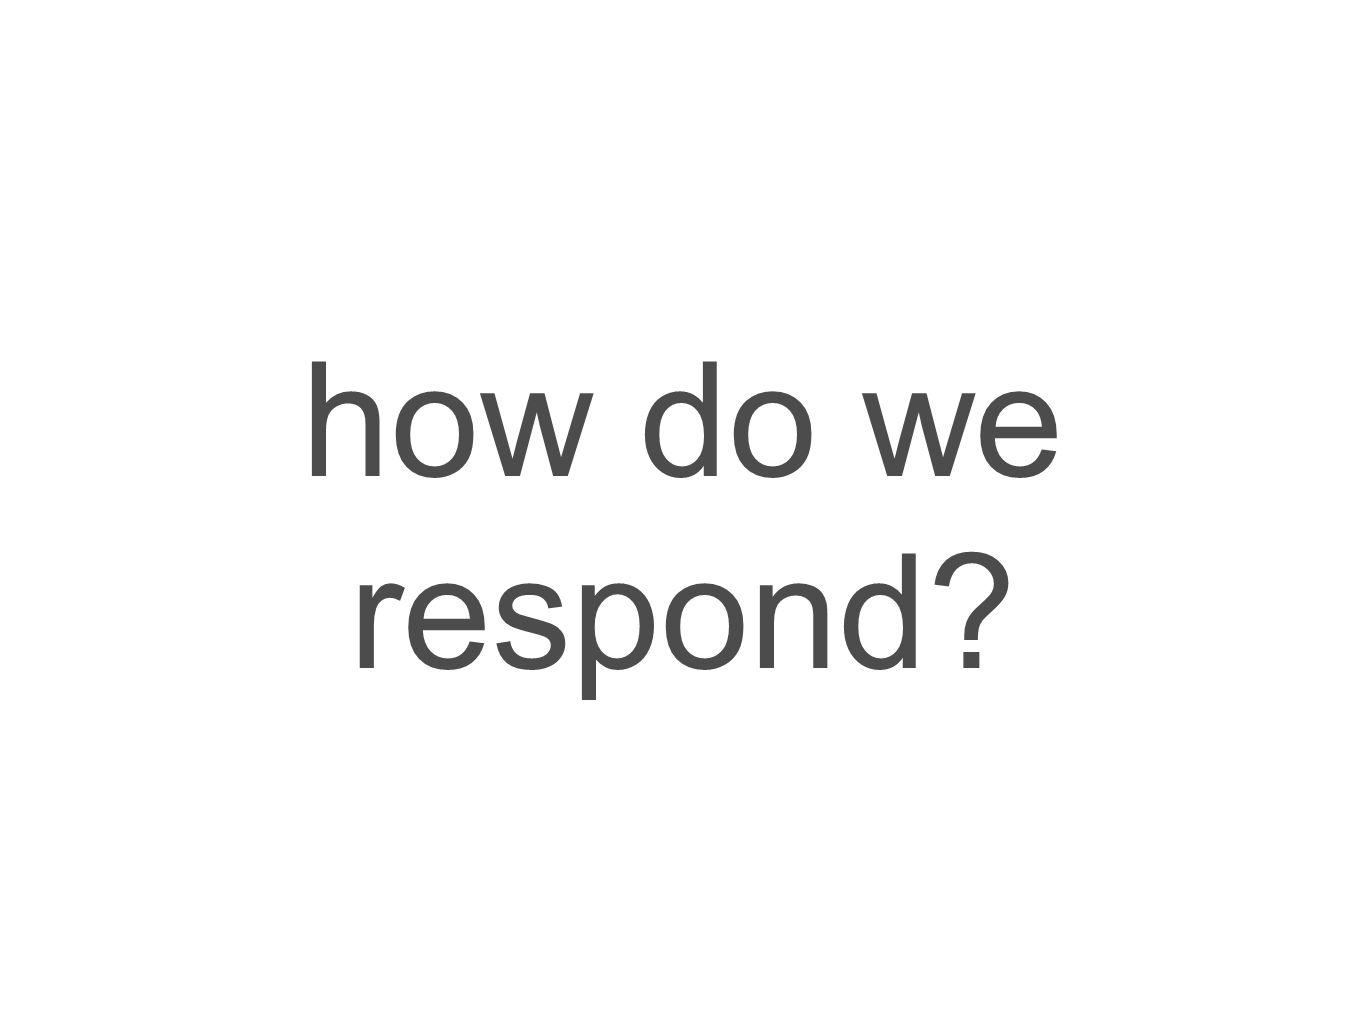 how do we respond?